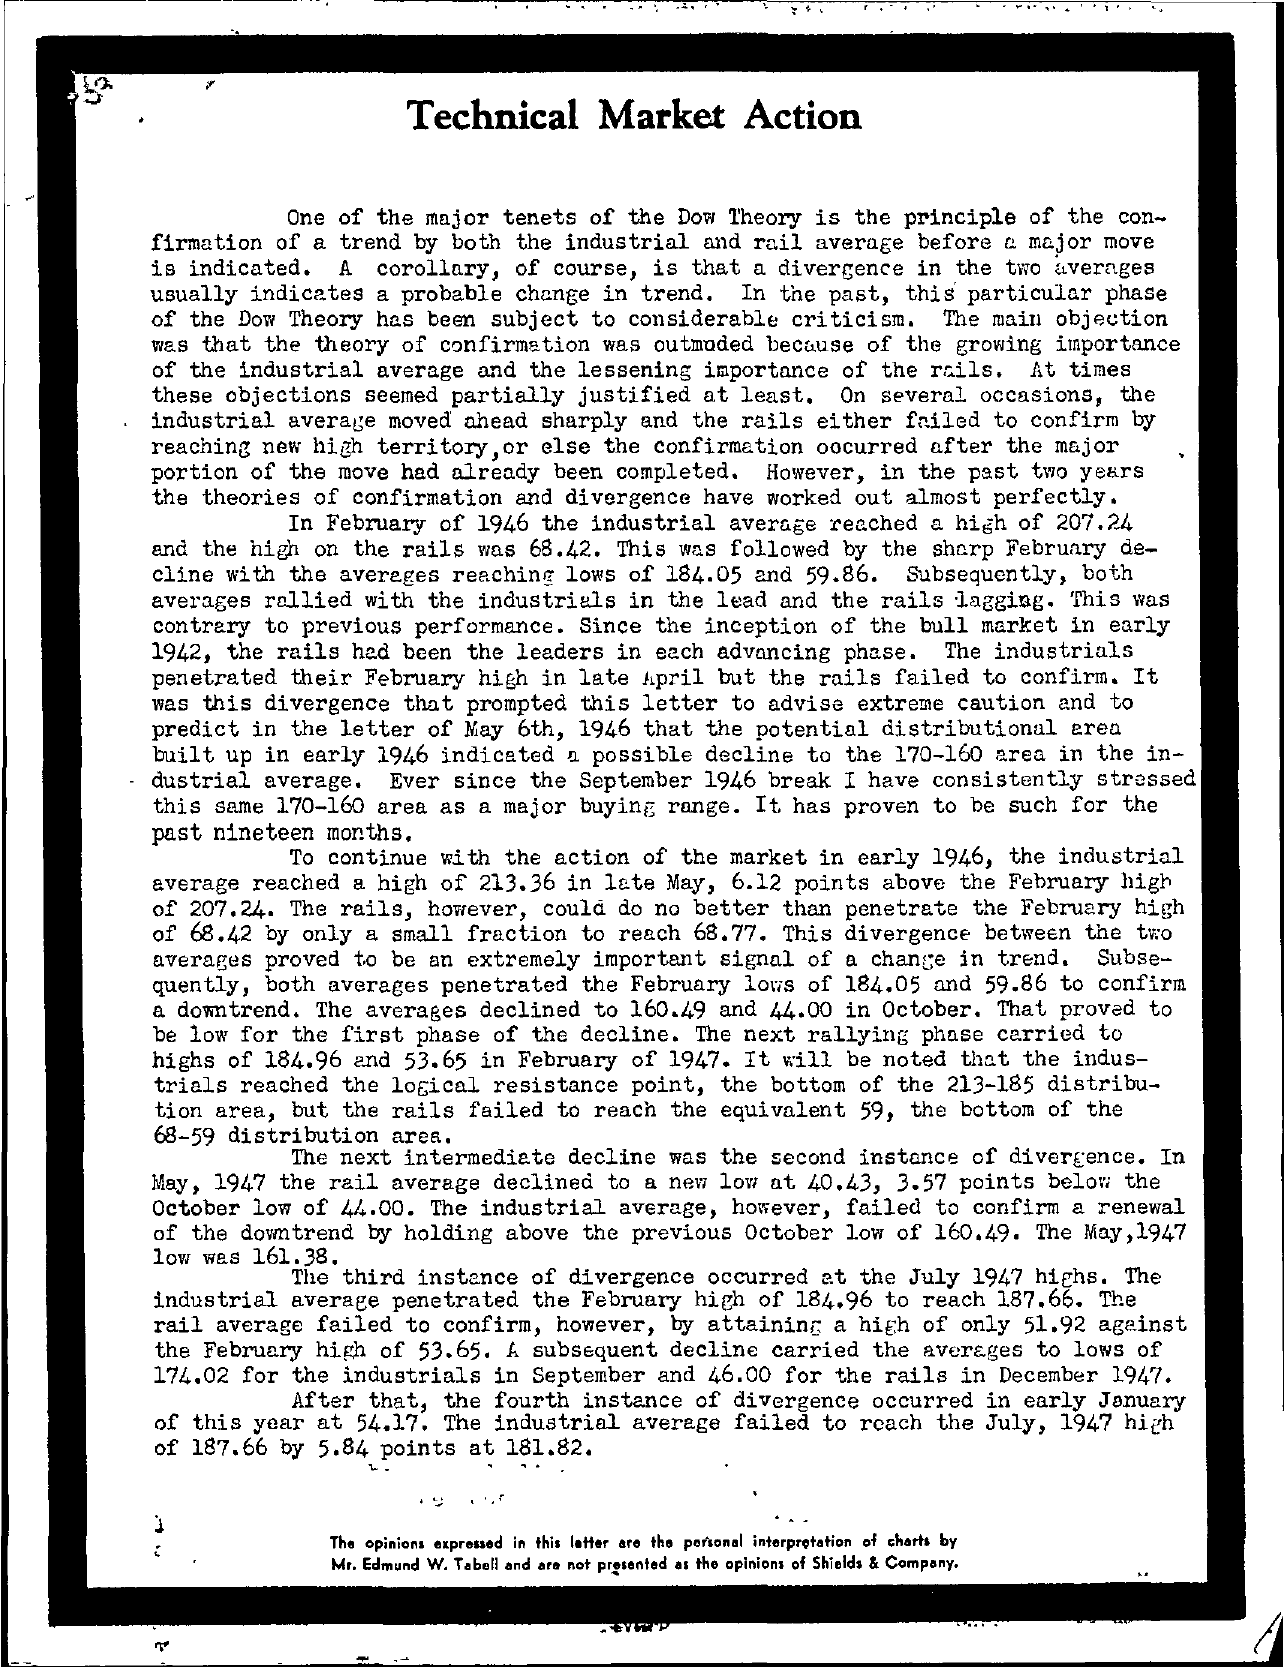 Tabell's Market Letter - May 05, 1948 page 1